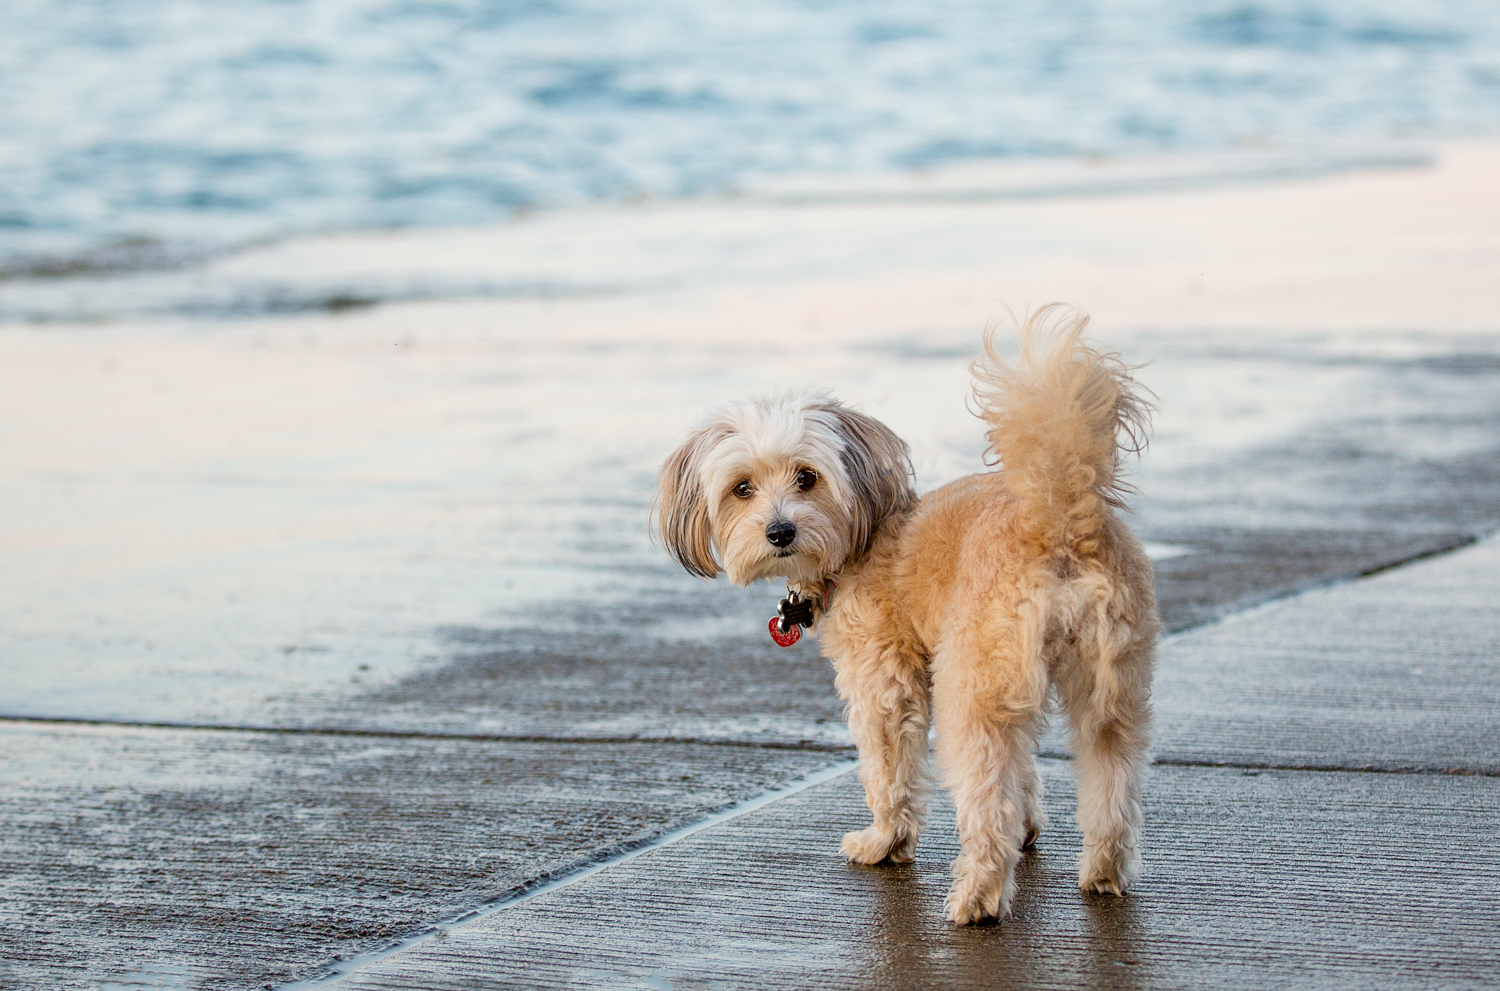 Cute dog at The Beach in Toronto